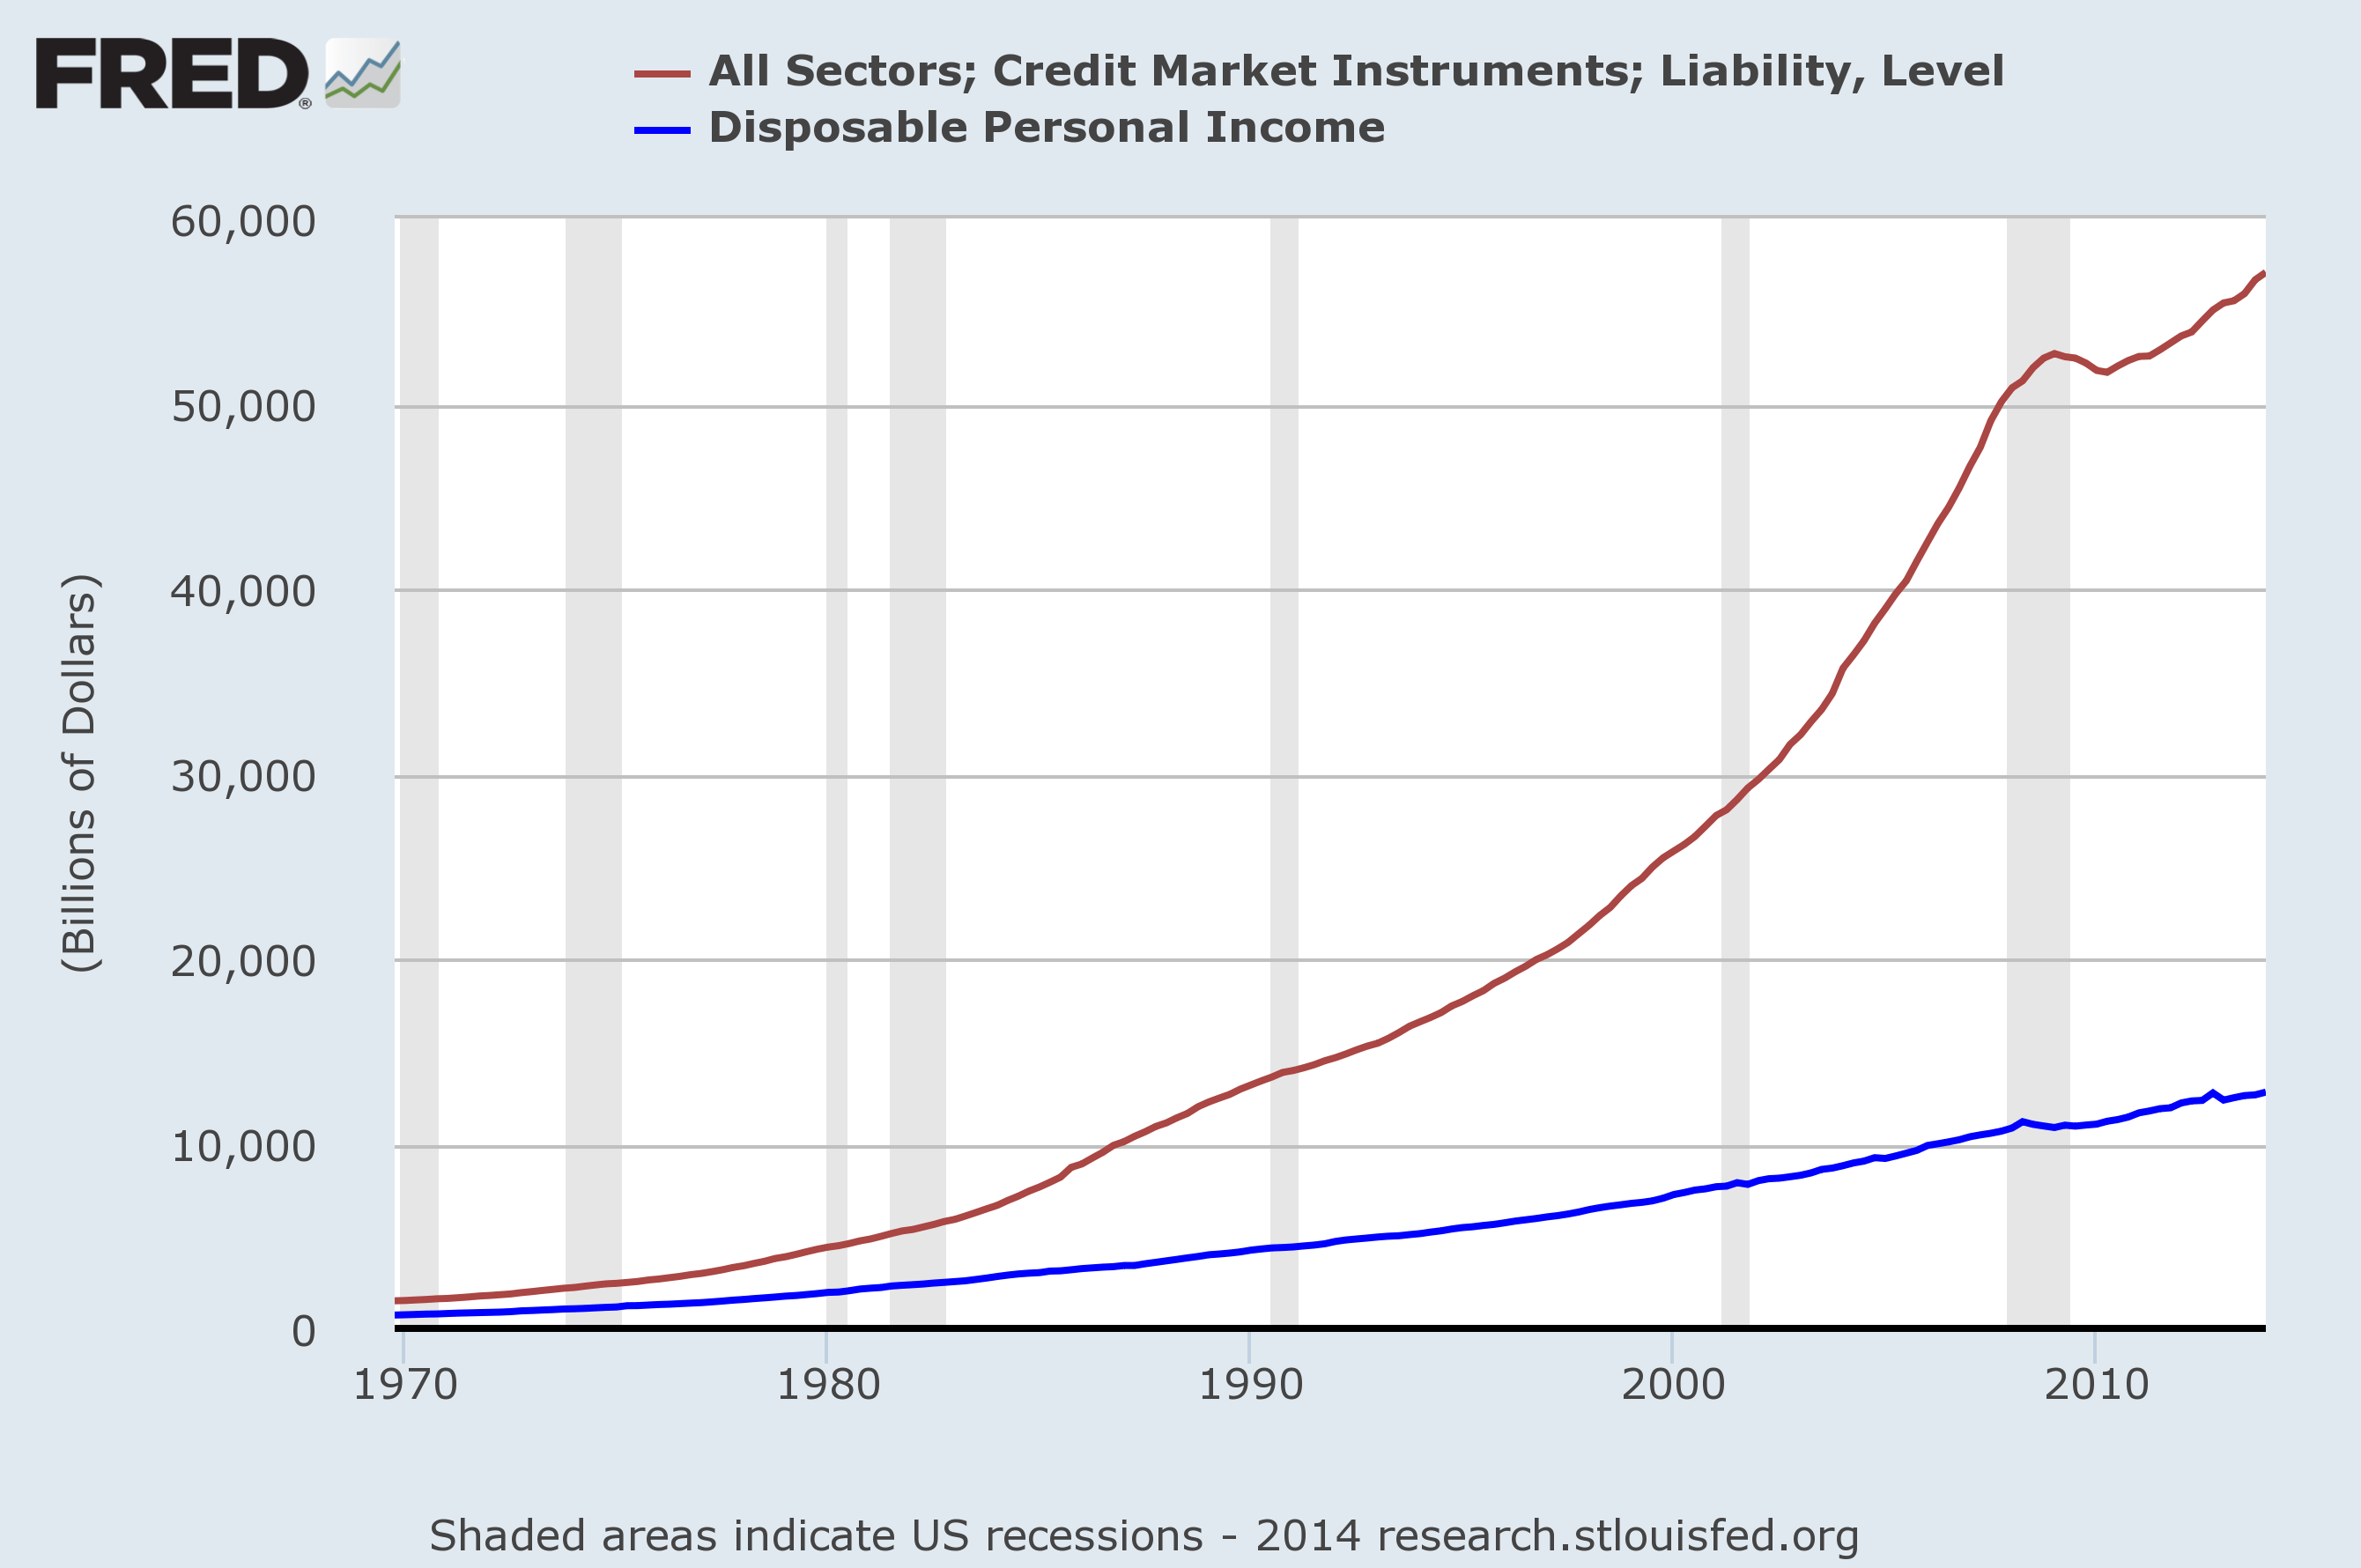 Credit and Disposable Income